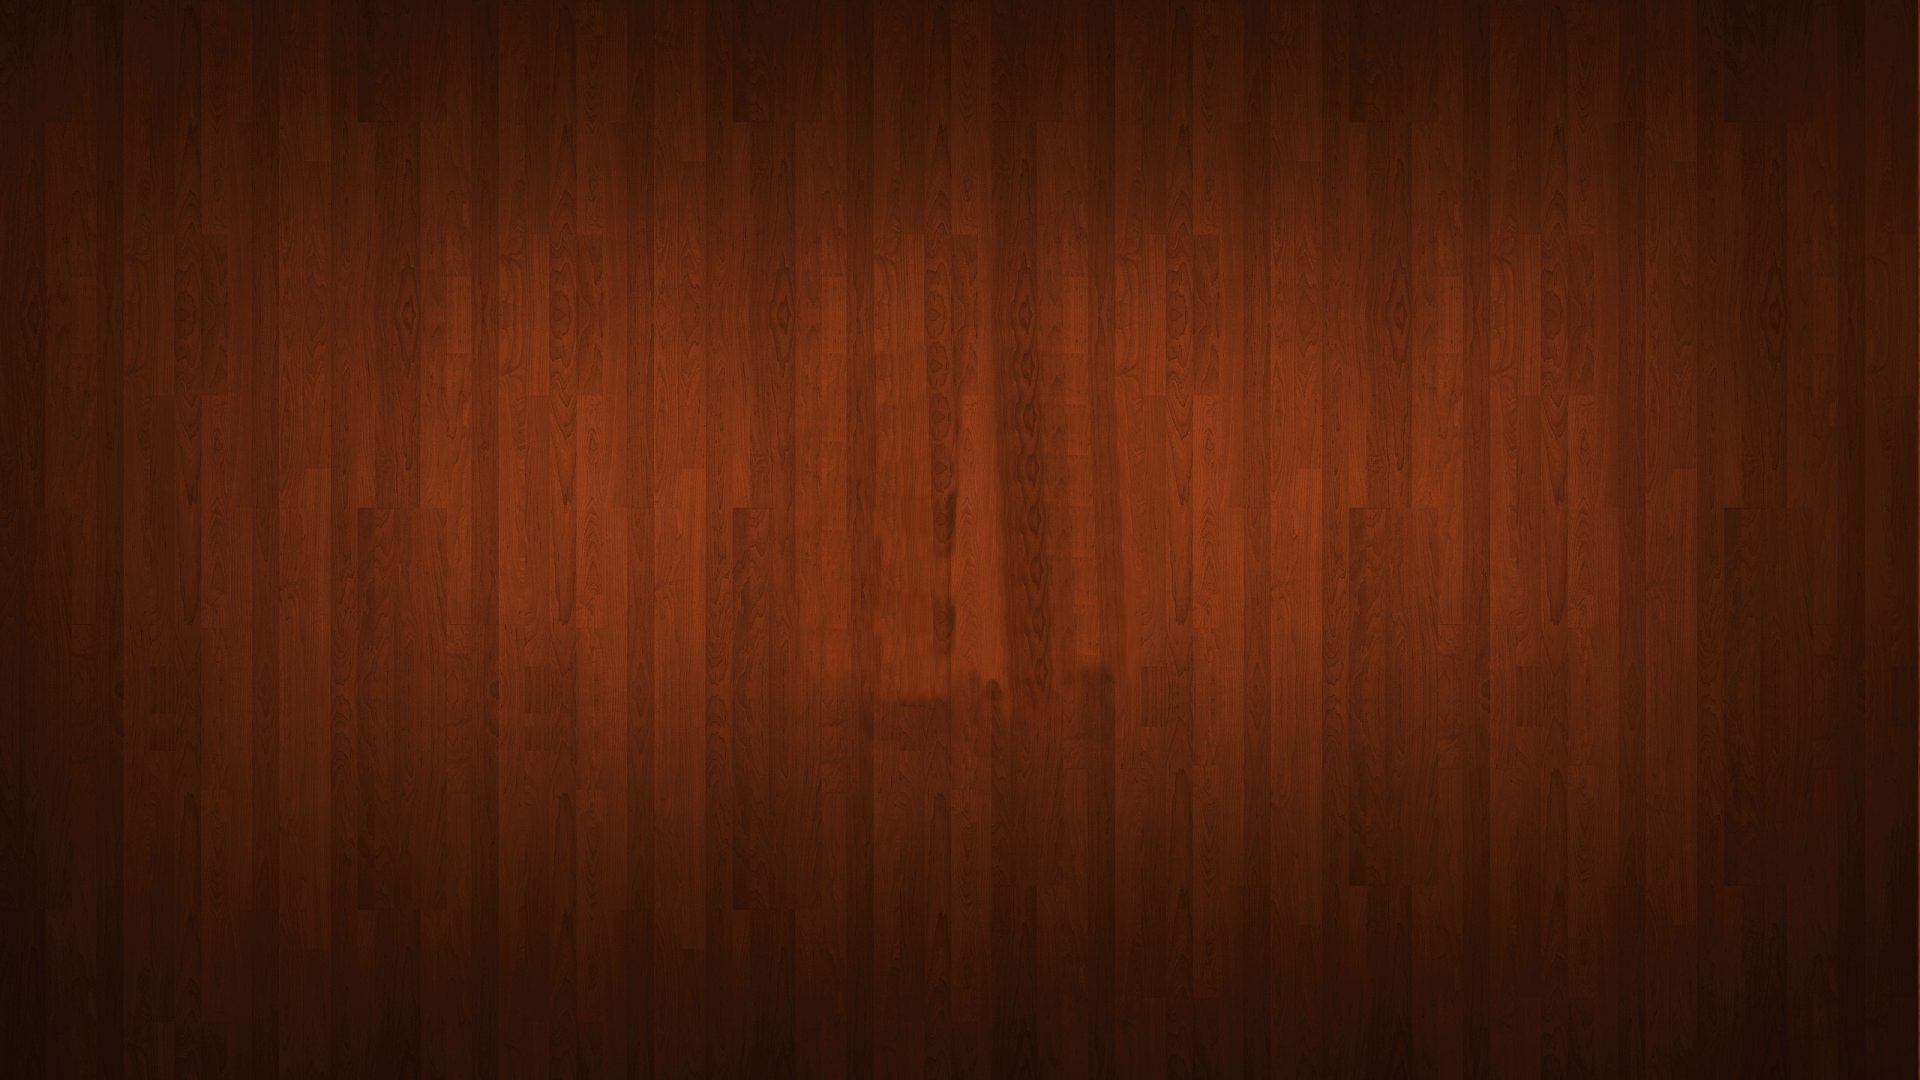 Wooden Solid Dark Wallpaper